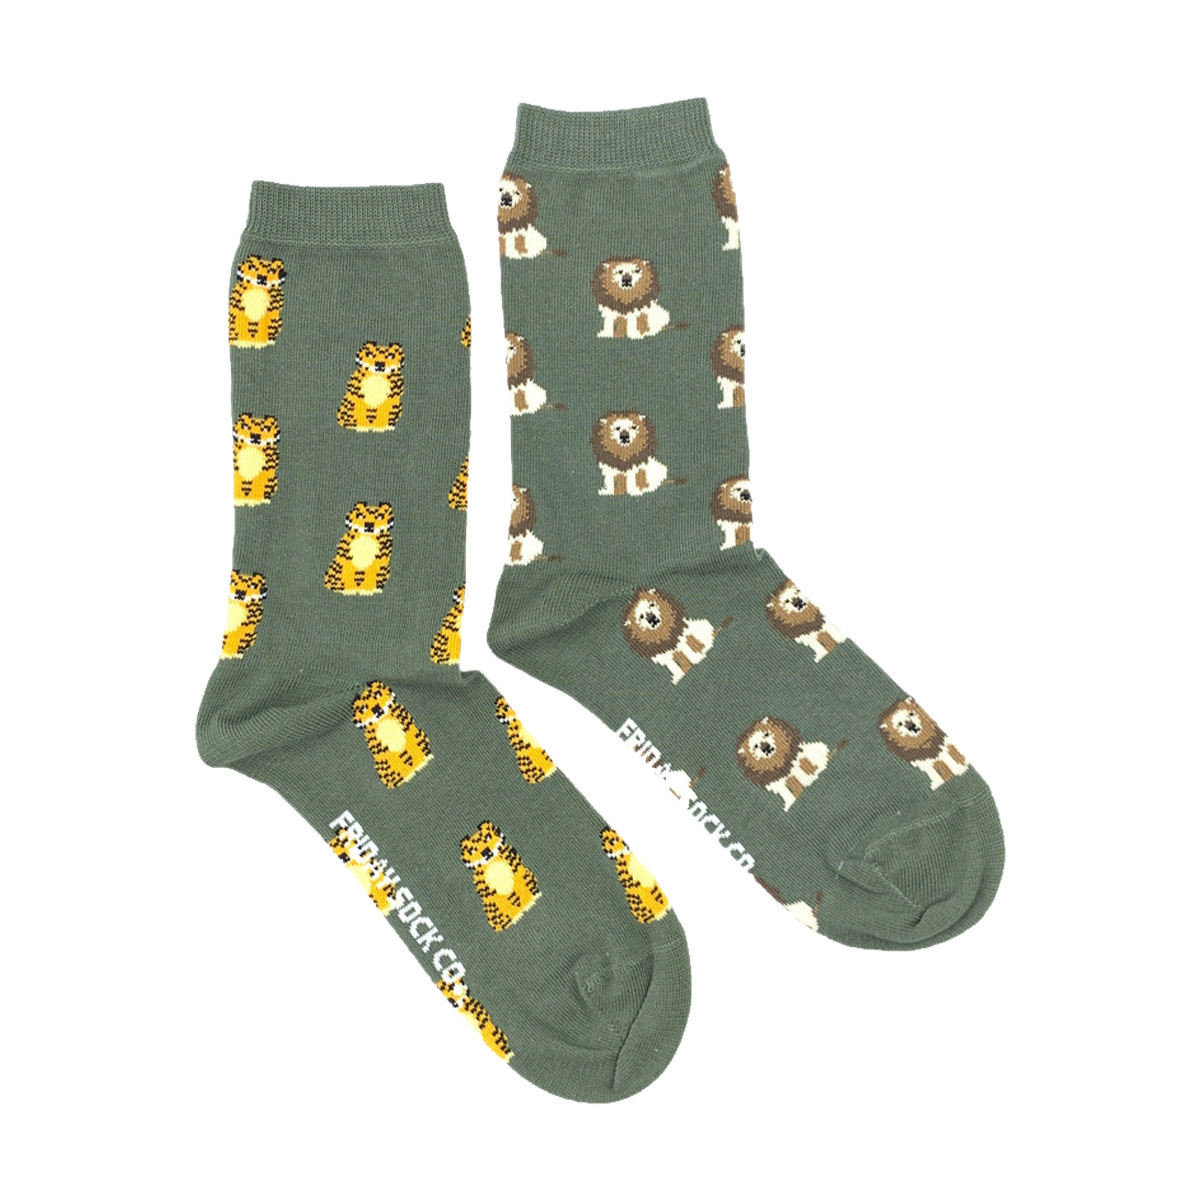 Friday Sock Co. Friday Sock Co. Women's Lion & Tiger Crew W 5 - 10 (M - 4 - 8)